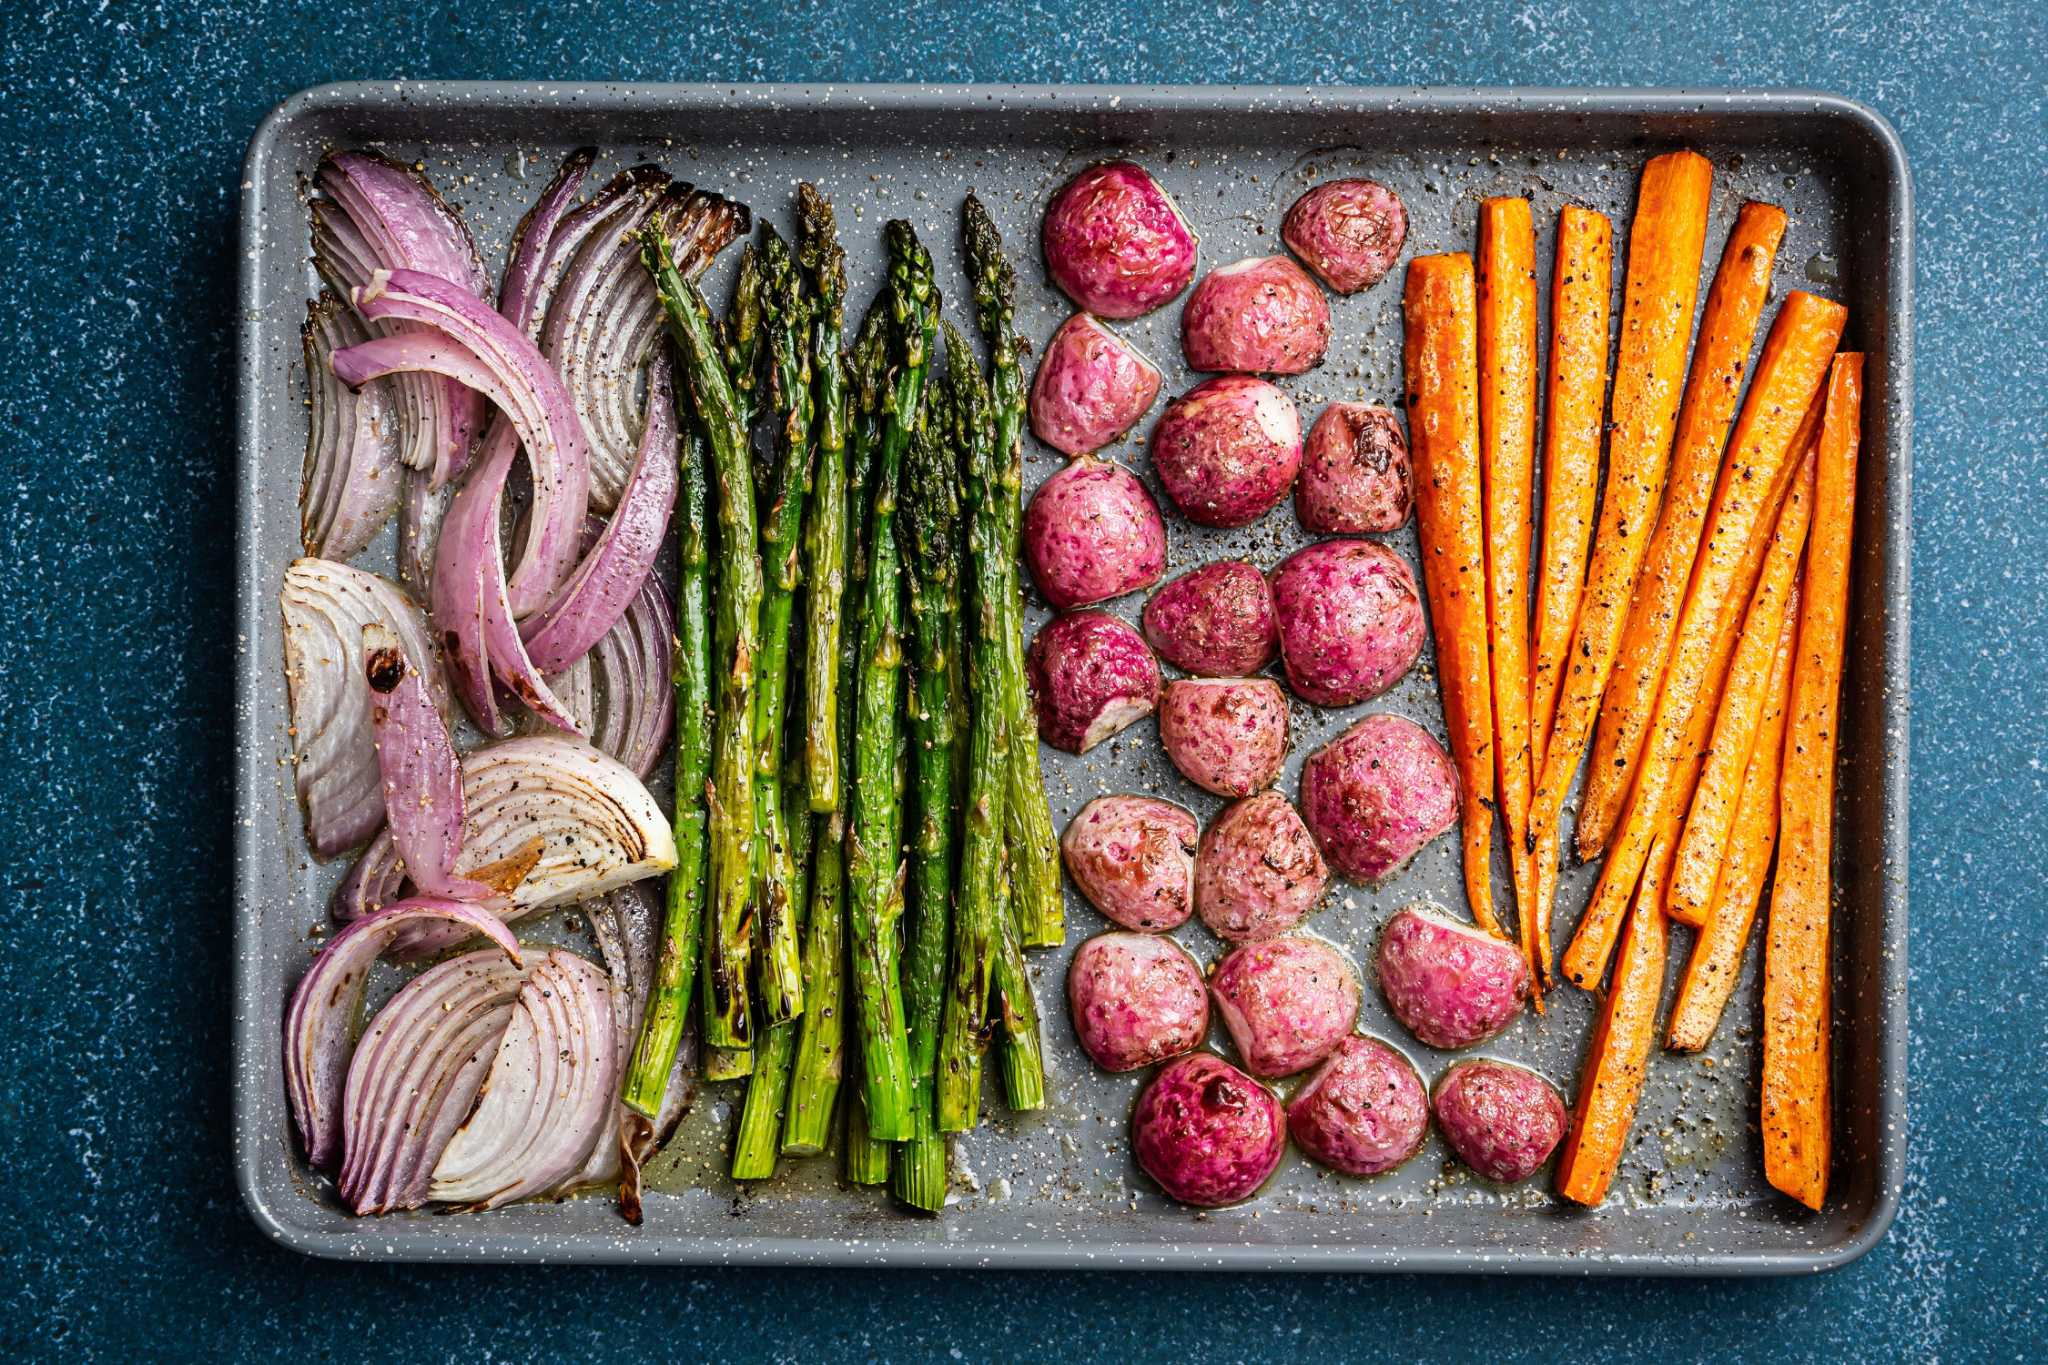 7 ideas for simple side dishes to round out dinner